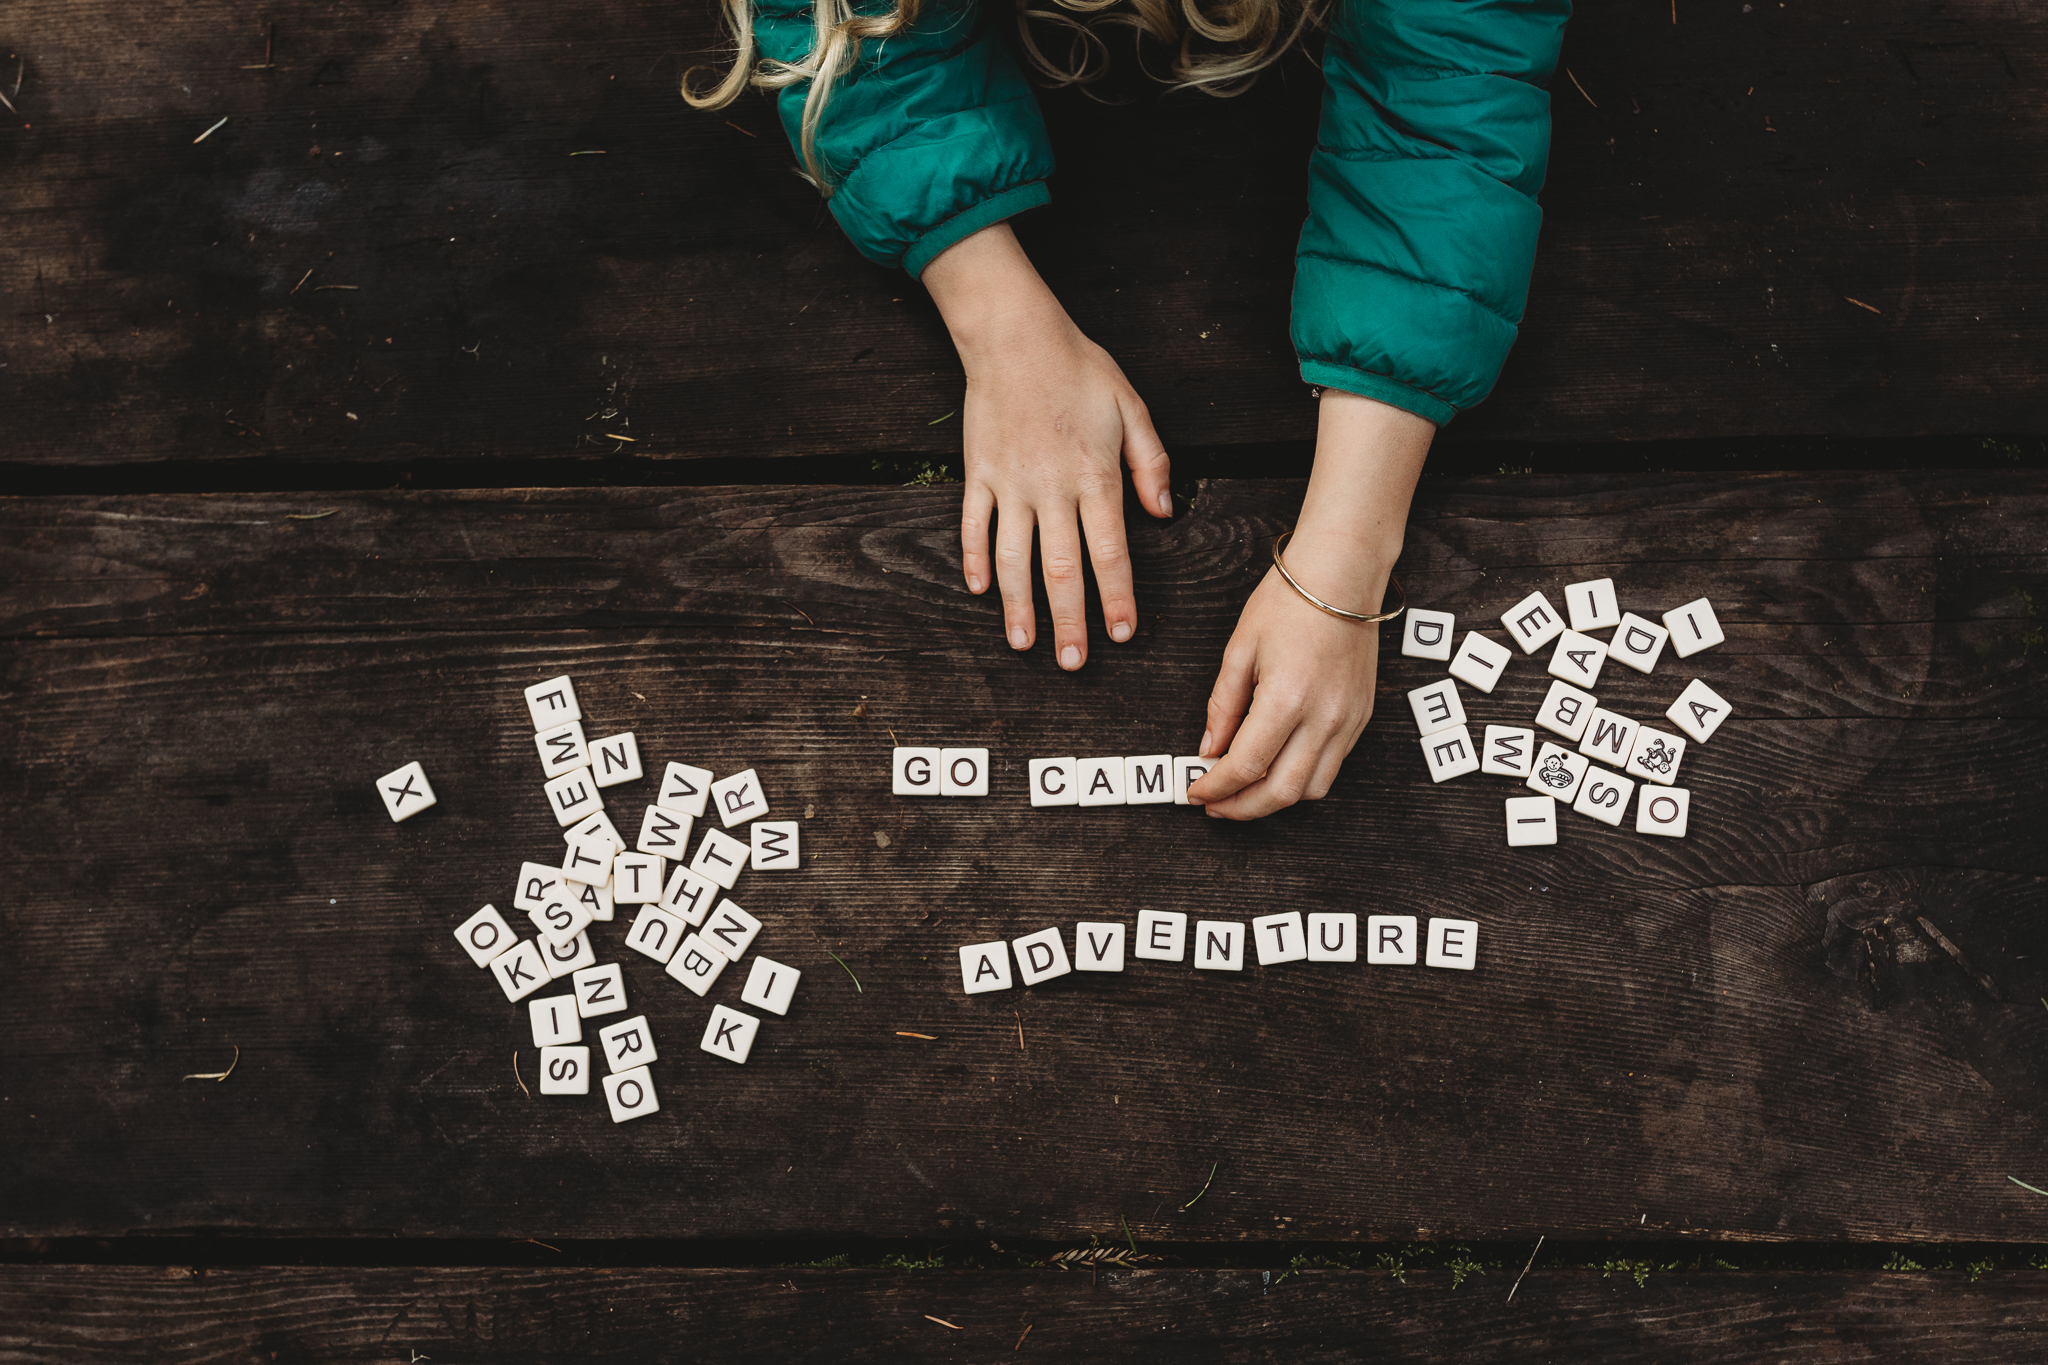 Take bananagrams on your next GoCamp Adventure. Photo by Natalie Gildersleeve.